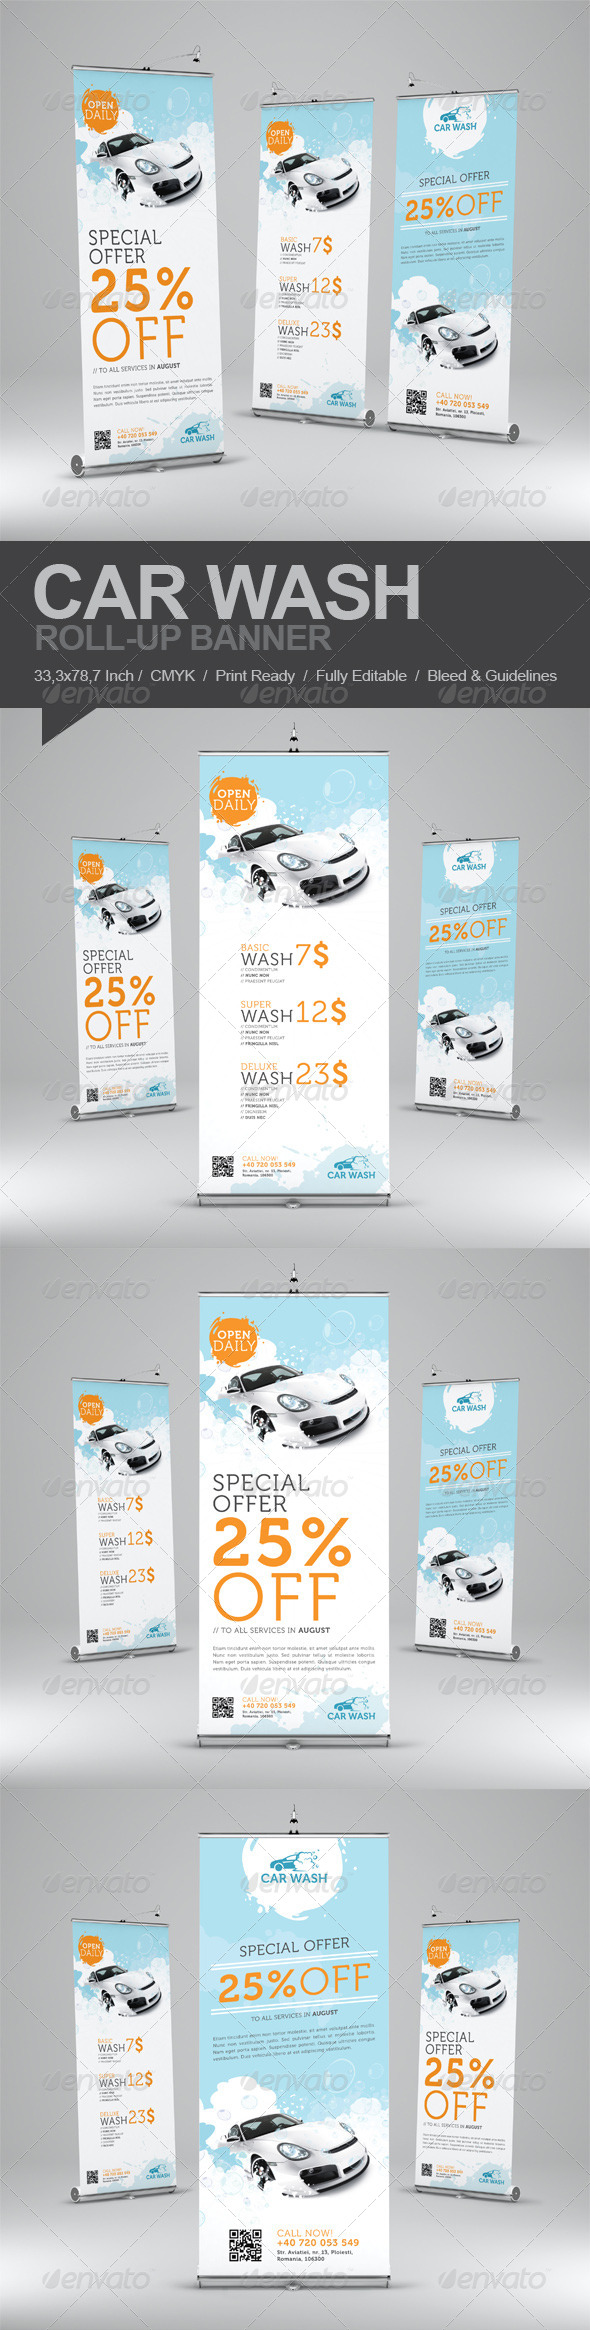 GraphicRiver Car Wash Roll-Up Banner 5170178